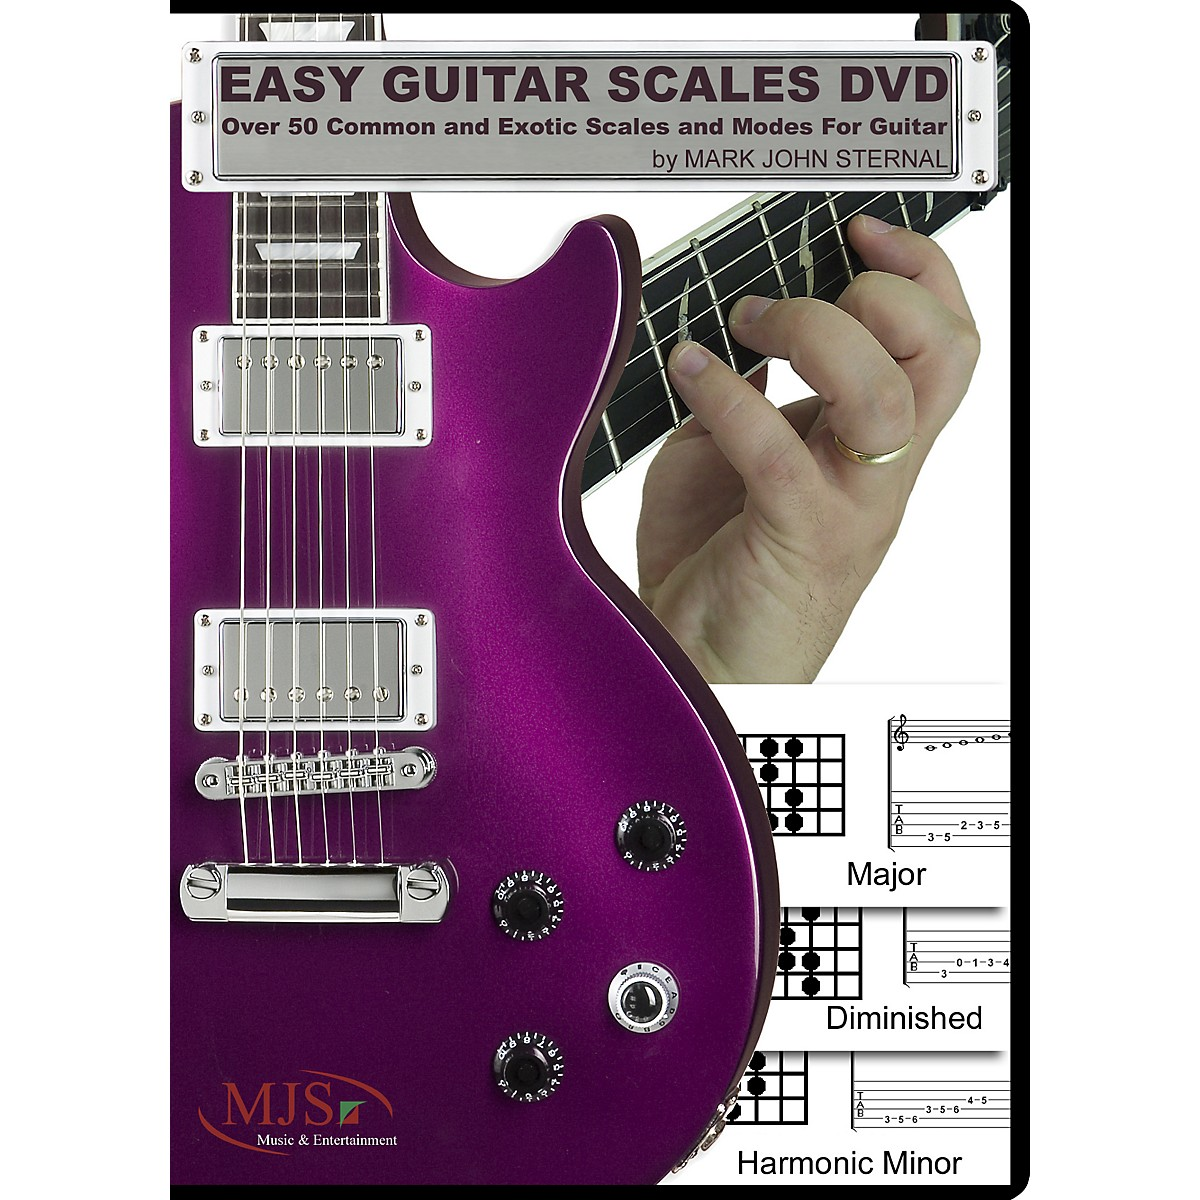 MJS Music Publications EASY GUITAR SCALES DVD